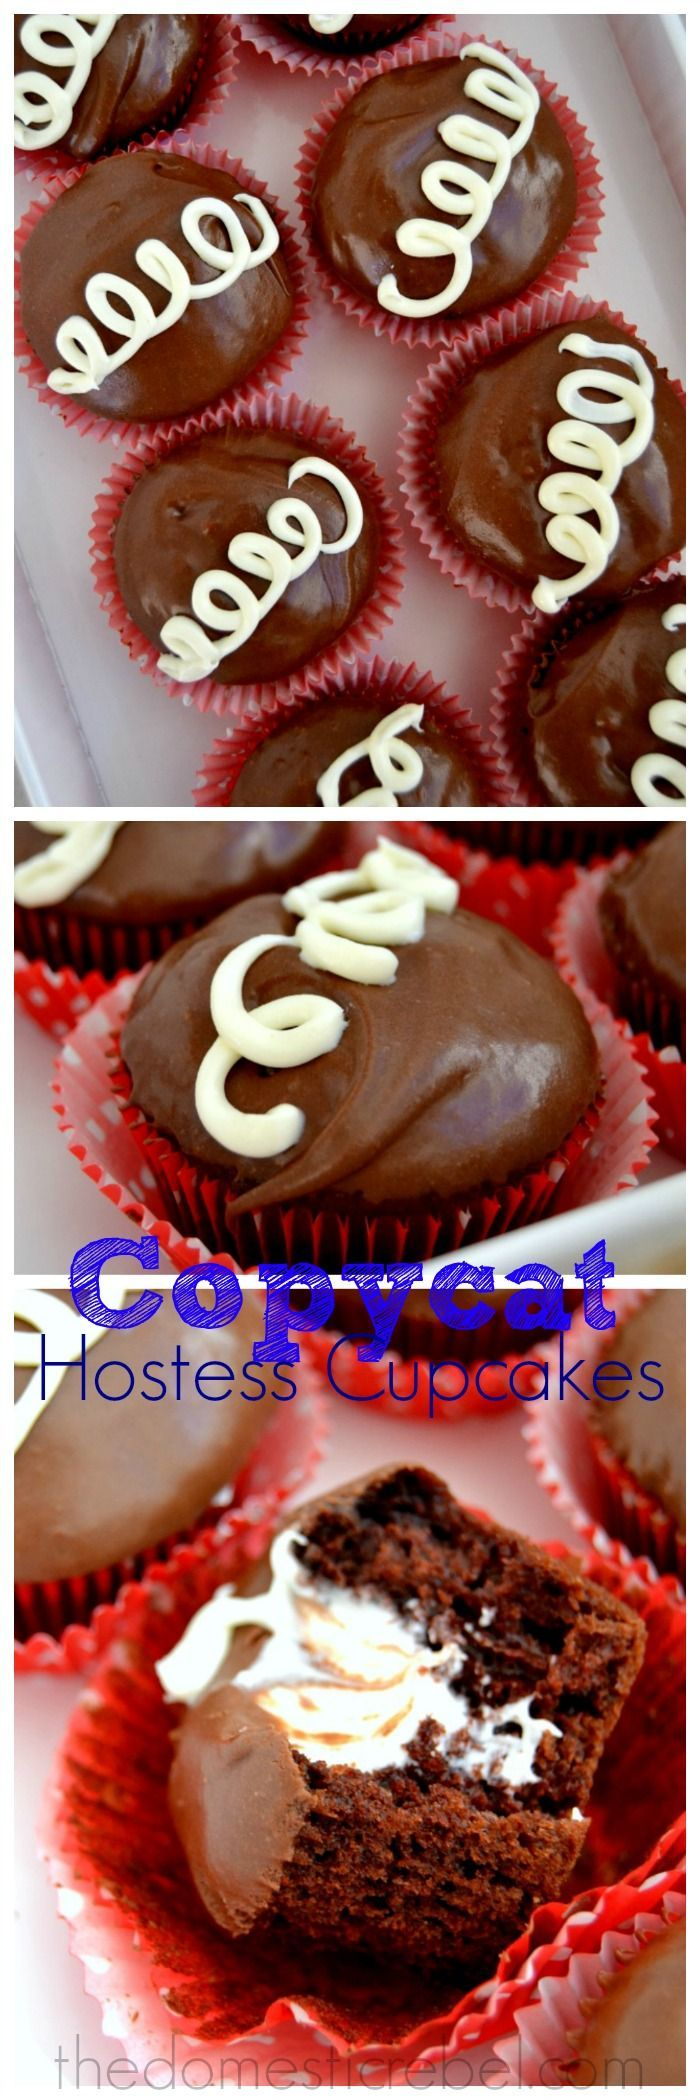 Moist, chocolaty and sweet Copycat Hostess Cupcakes taste identical to the real deal and are SO easy to make! #cupcakes #chocolate